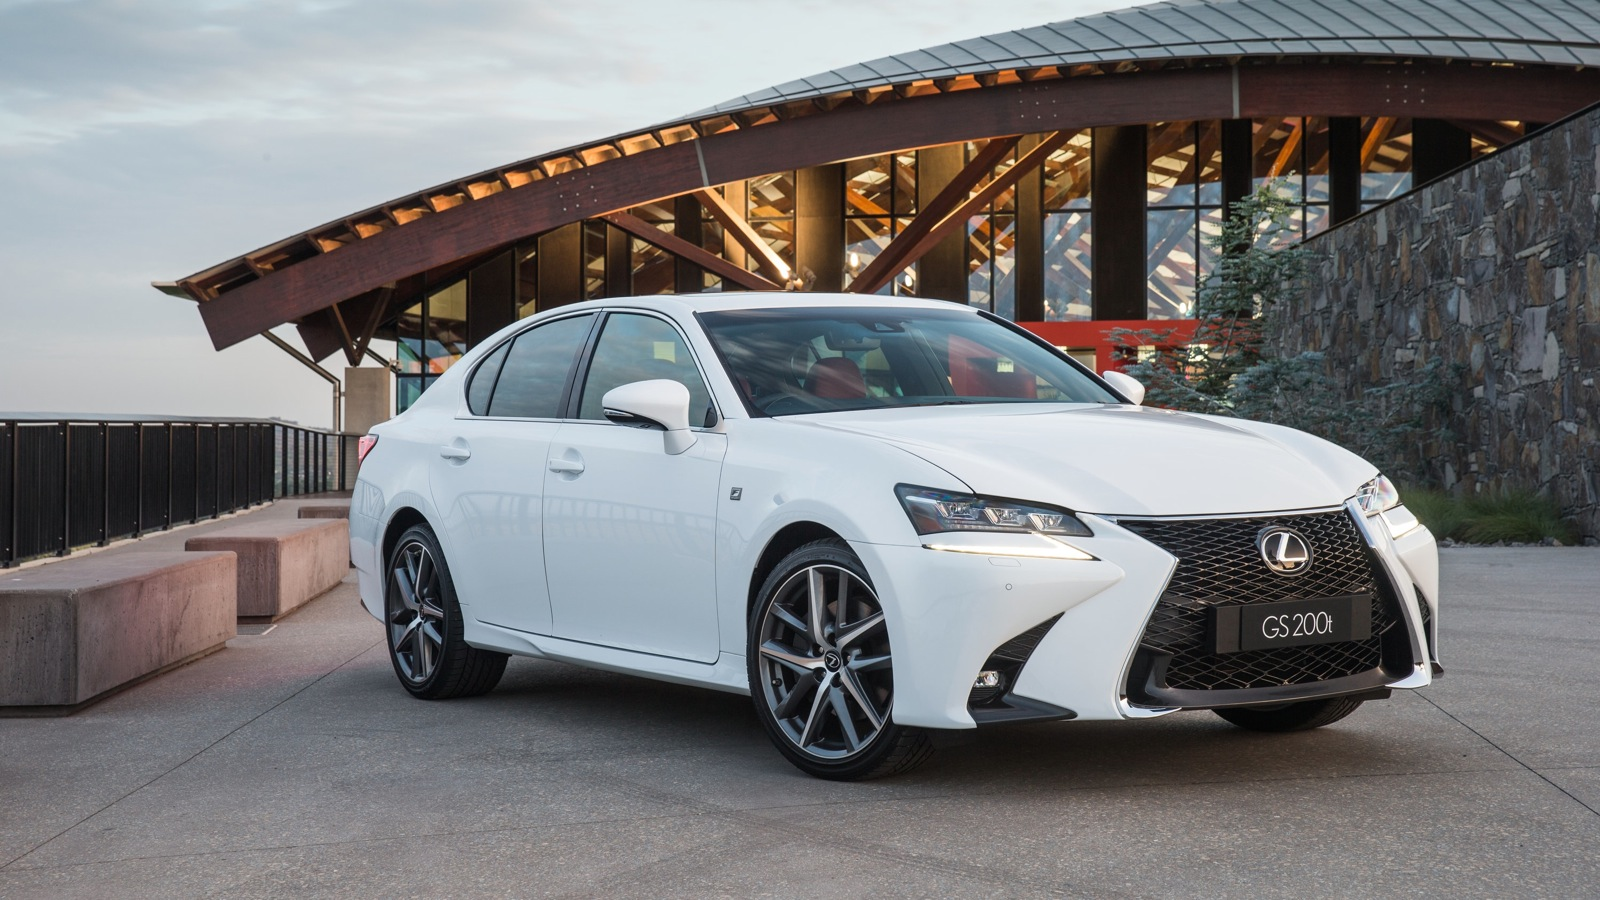 2016 Lexus Gs200t Review Caradvice